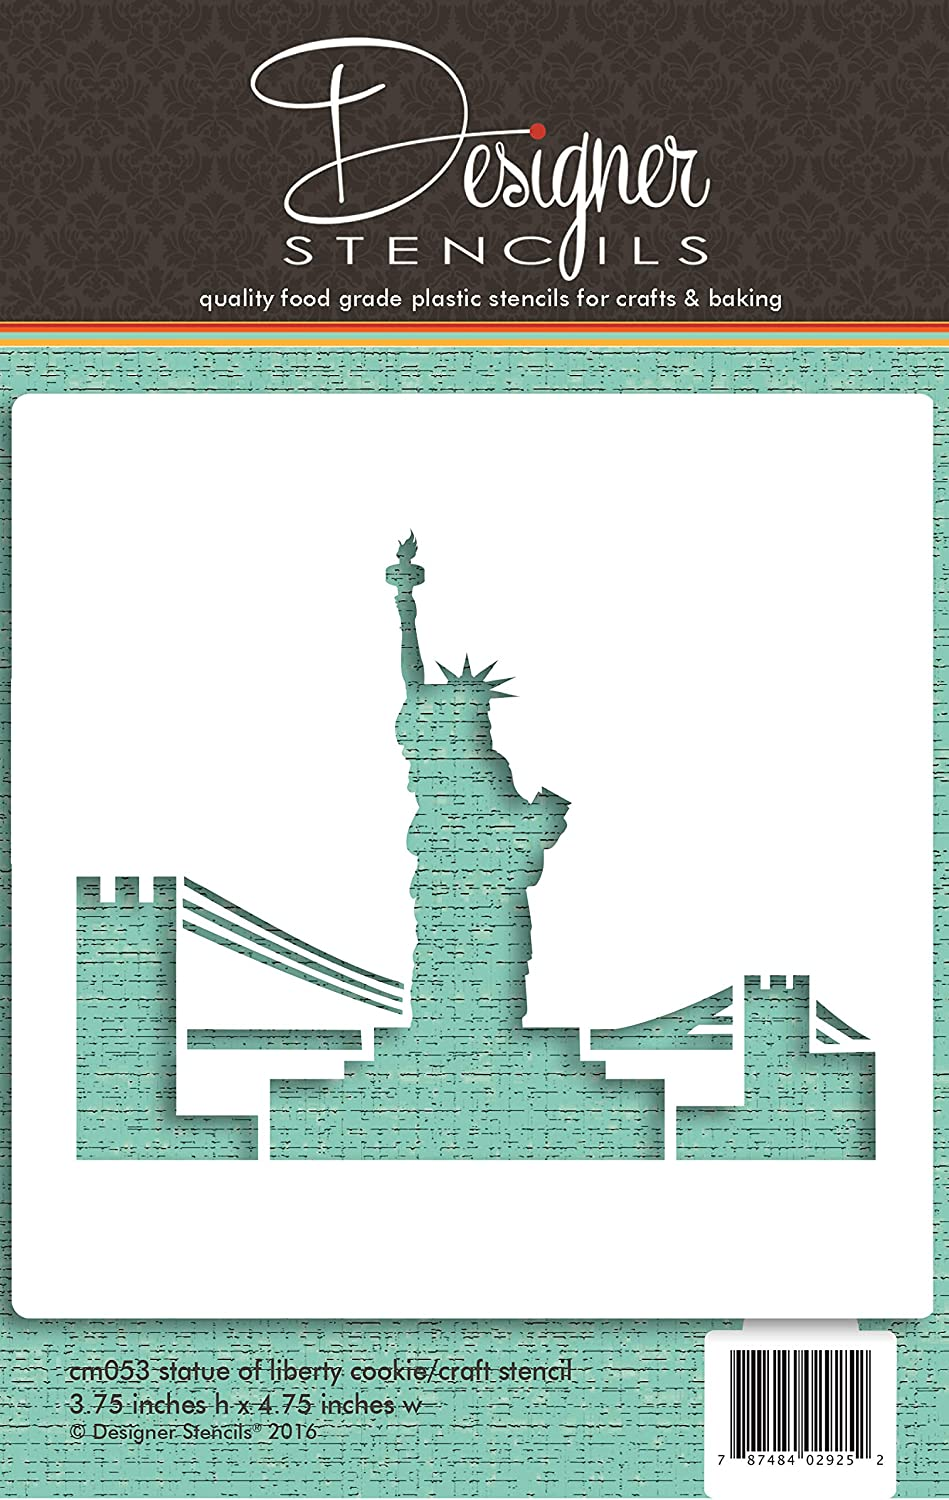 Statue of Liberty Cookie and Craft Stencil CM053 by Designer Stencils